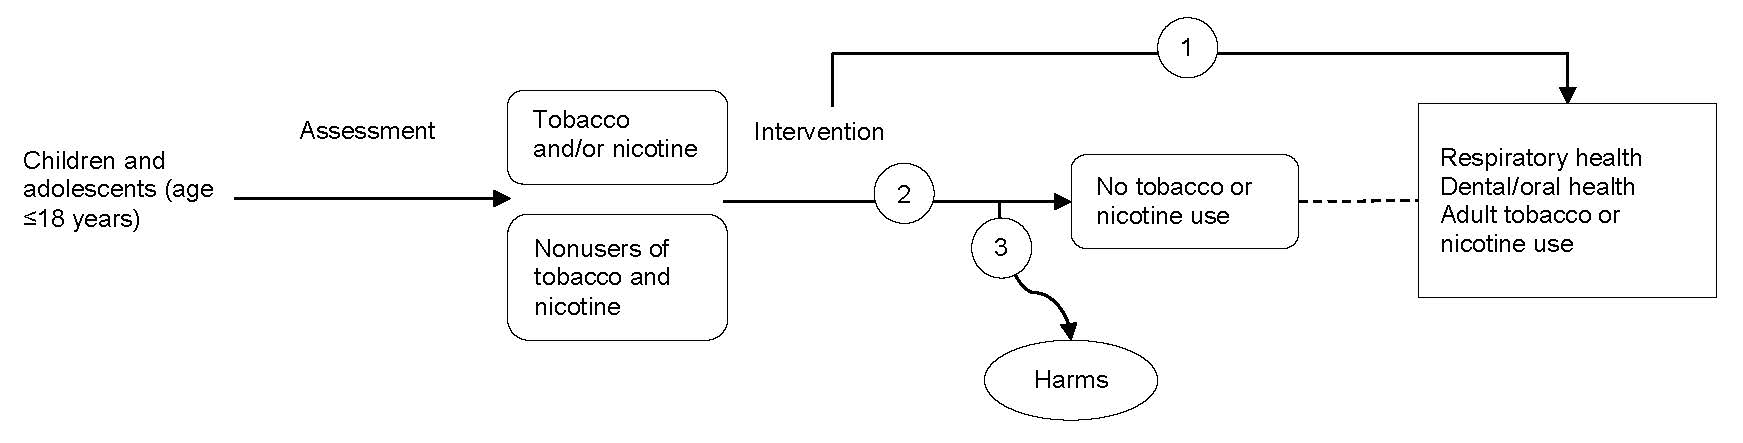 Figure 1 is an analytic framework that depicts the pathway children and adolescents age 18 years or younger may go through to prevent or stop tobacco or nicotine use. Children and adolescents are assessed for tobacco or nicotine use, may undergo prevention and cessation interventions, which may lead to prevention or cessation of tobacco or nicotine use and secondary health outcomes (improved respiratory health and dental/oral health) and reduced adult smoking or nicotine use. Interventions may also lead to harms.